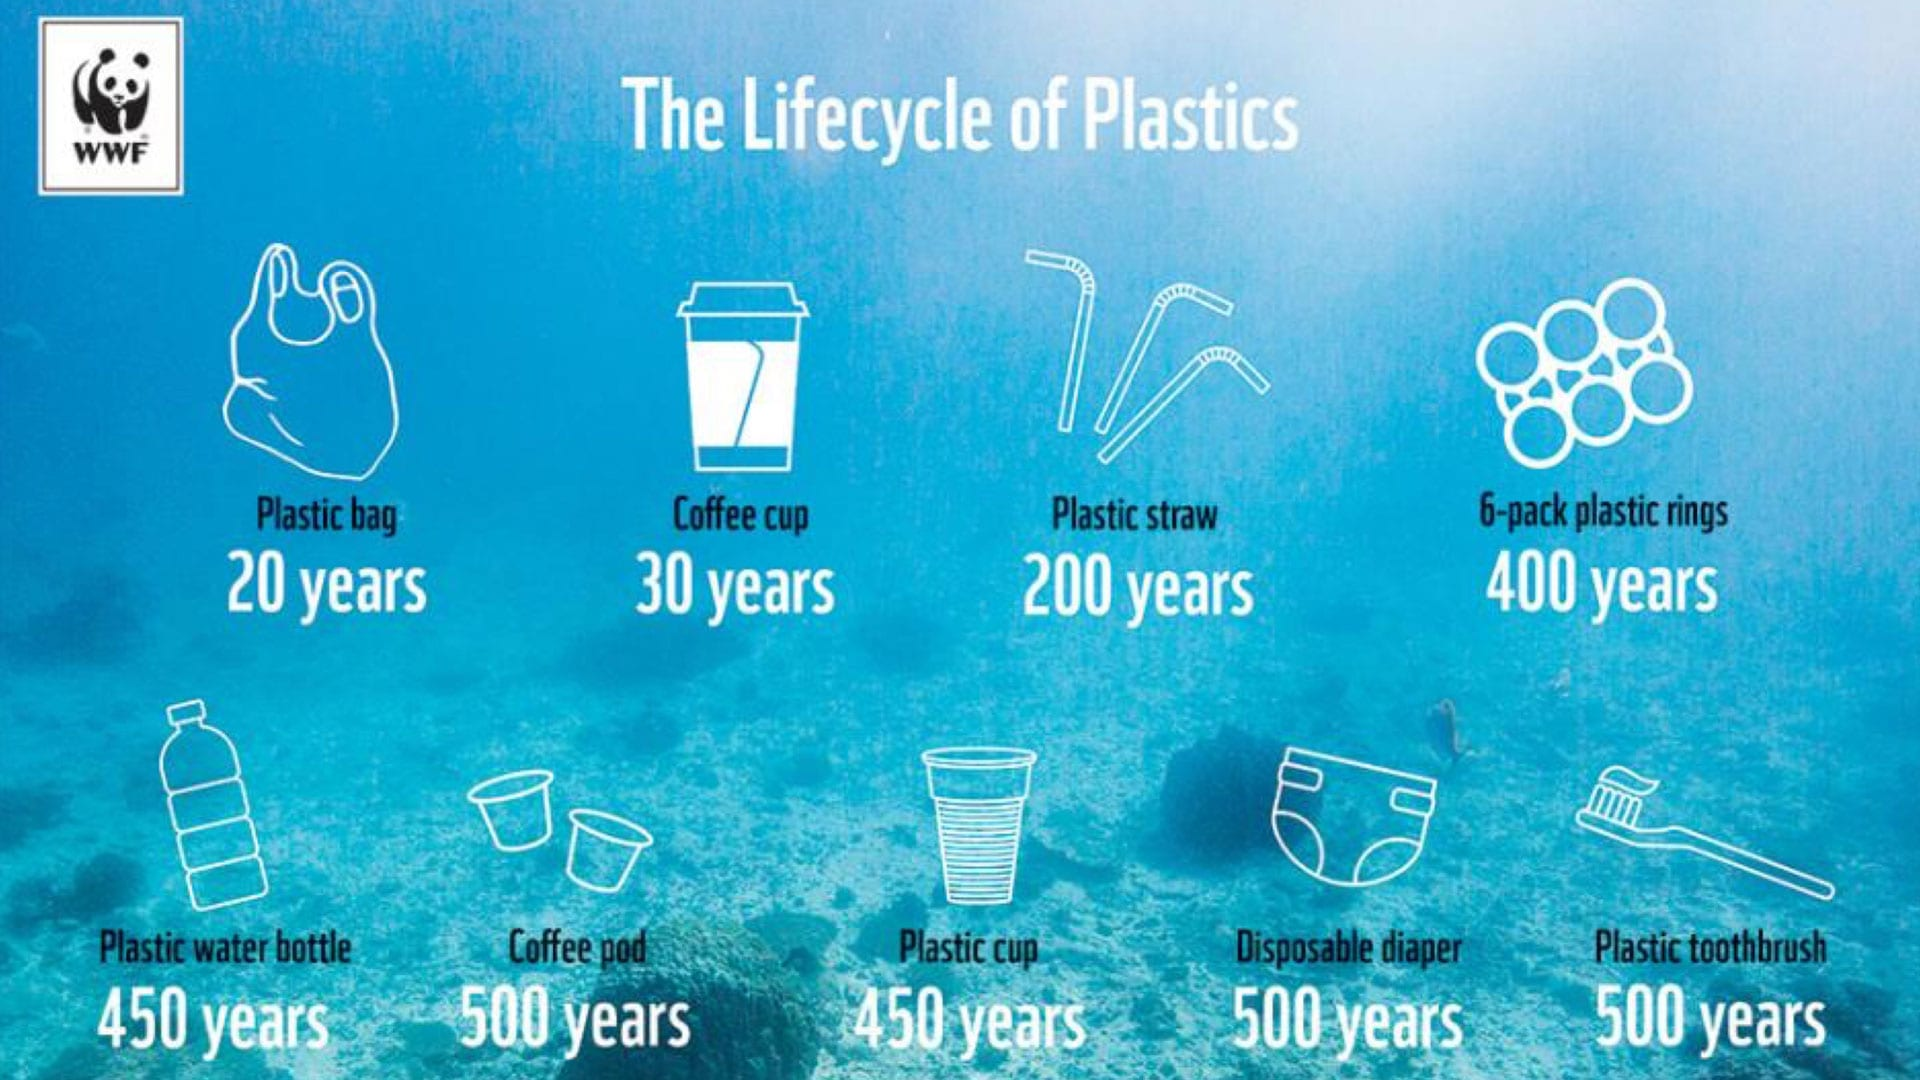 Lifecycle of plastics